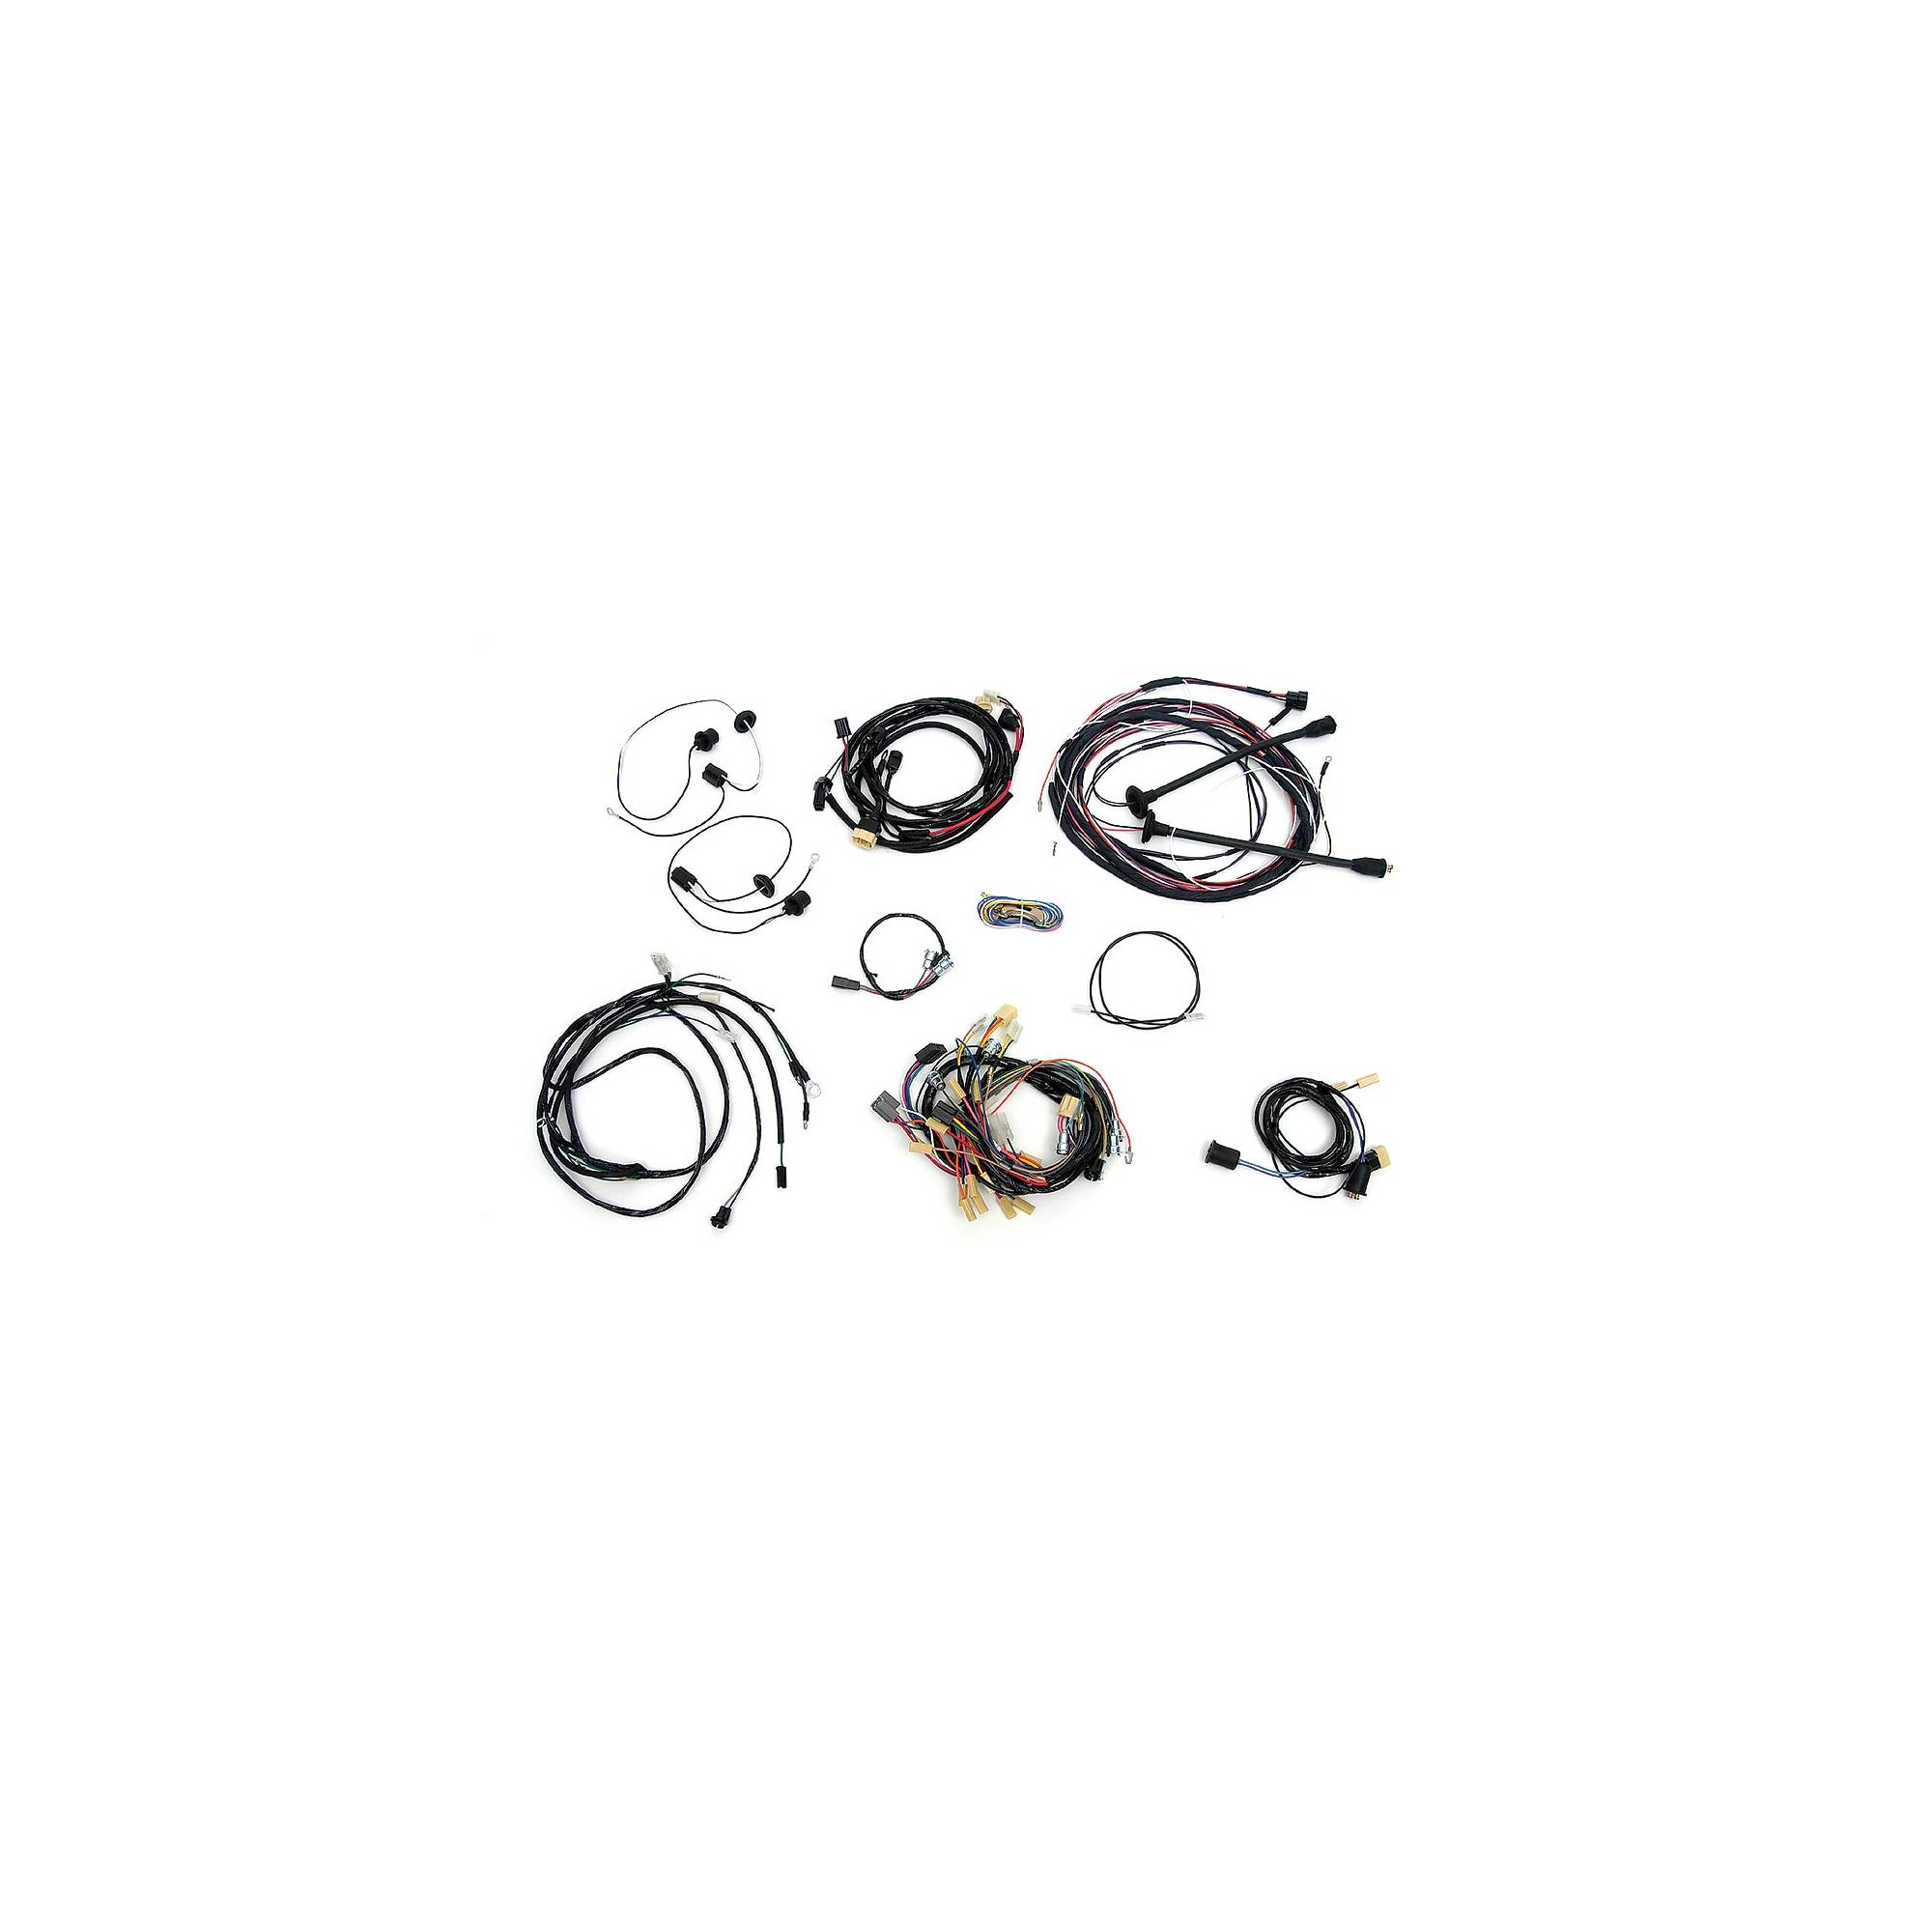 Eckler S Premier Products 57 Chevy Wiring Harness